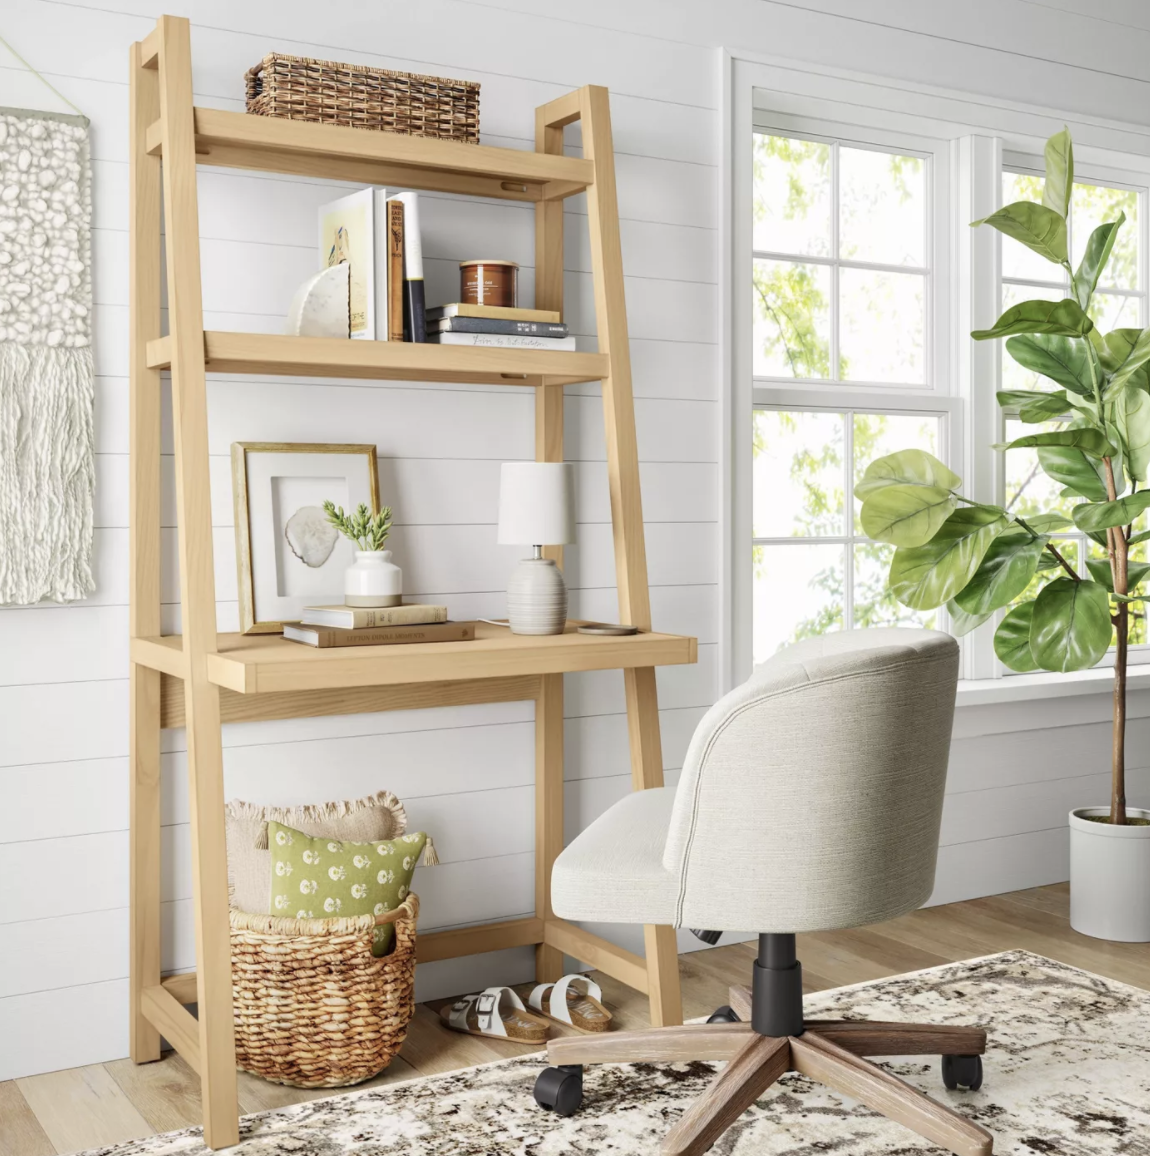 the ladder desk which has two shelves